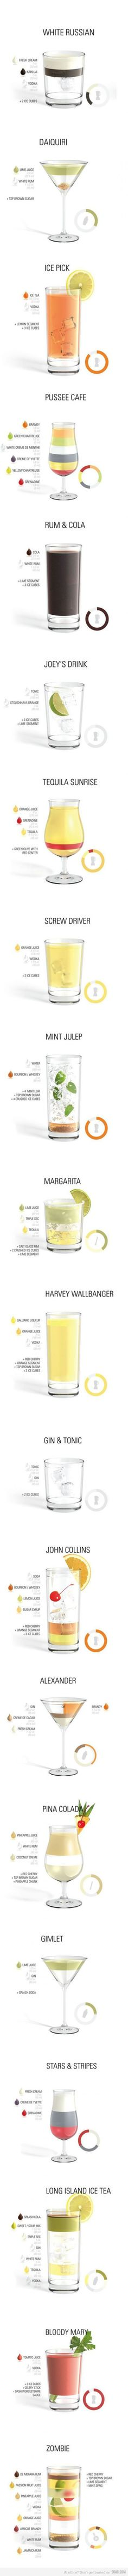 cocktail infographic